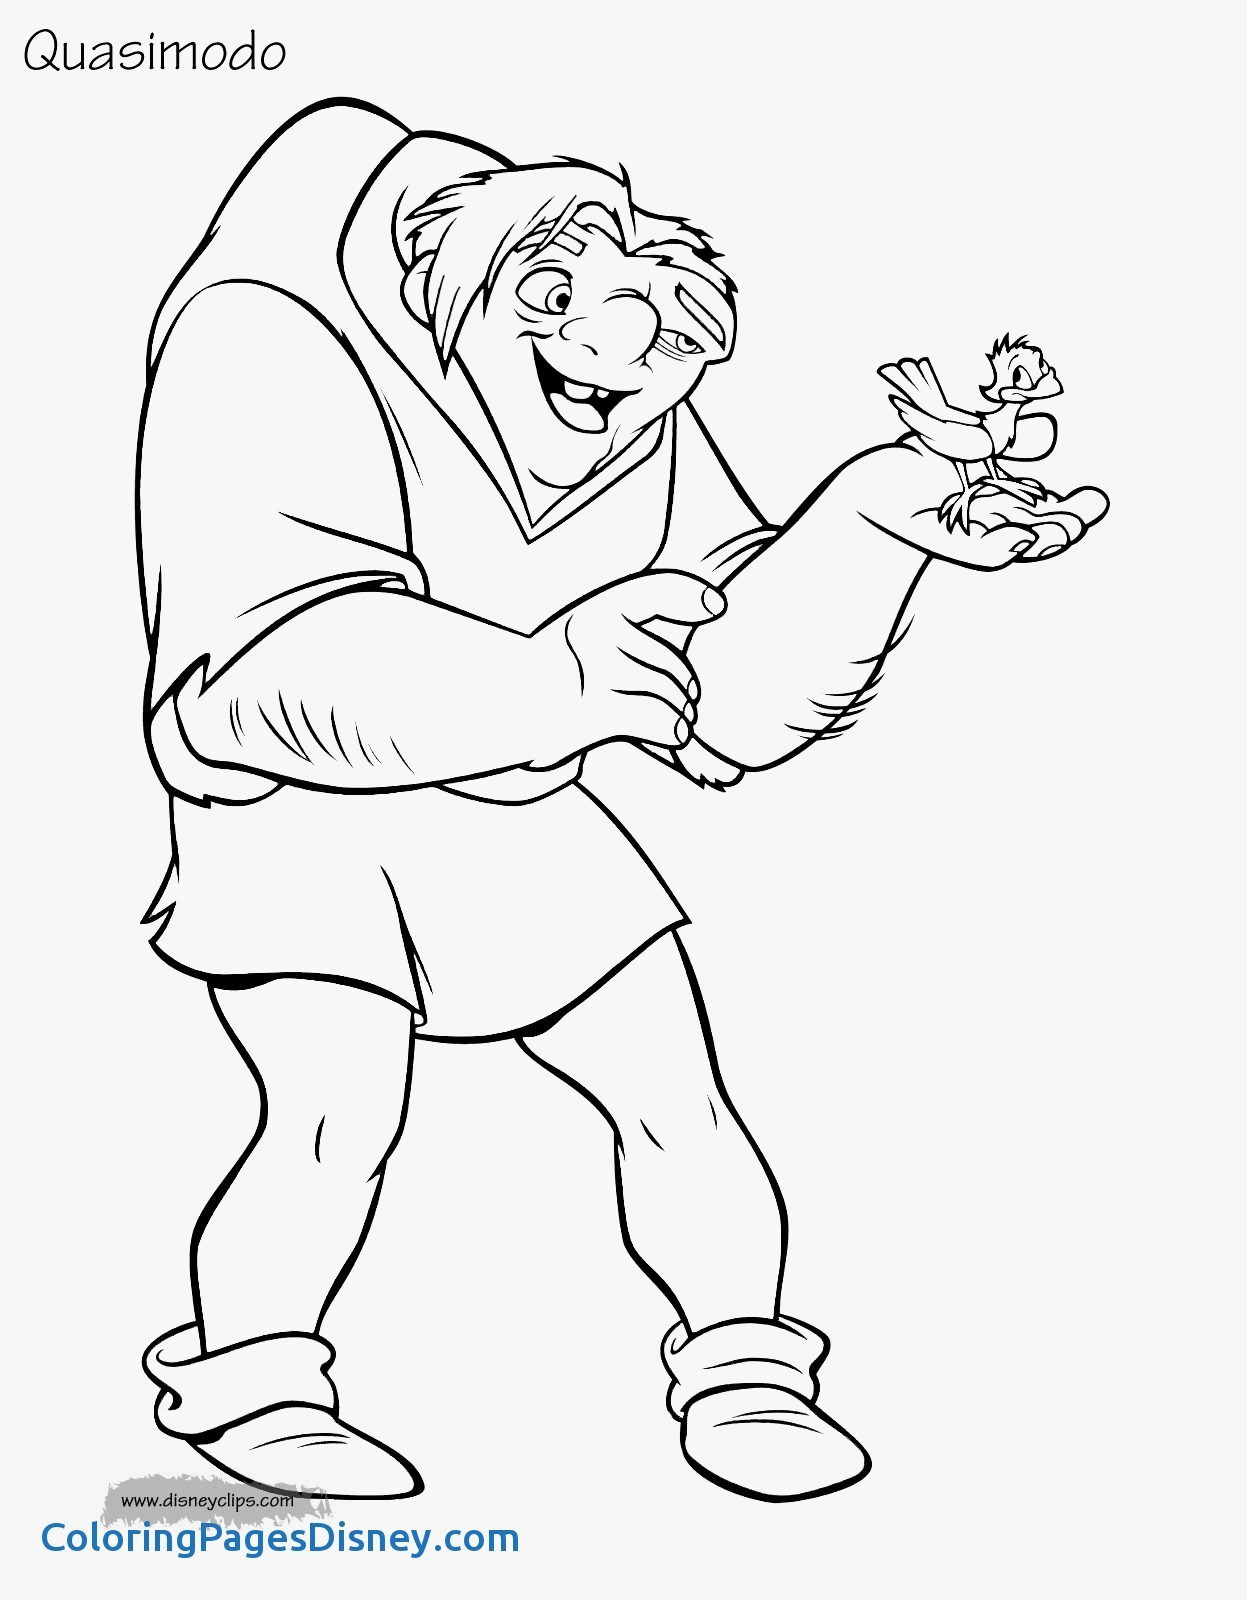 1247x1600 The Hunchback Notre Dame Coloring Pages Fresh The Hunchback